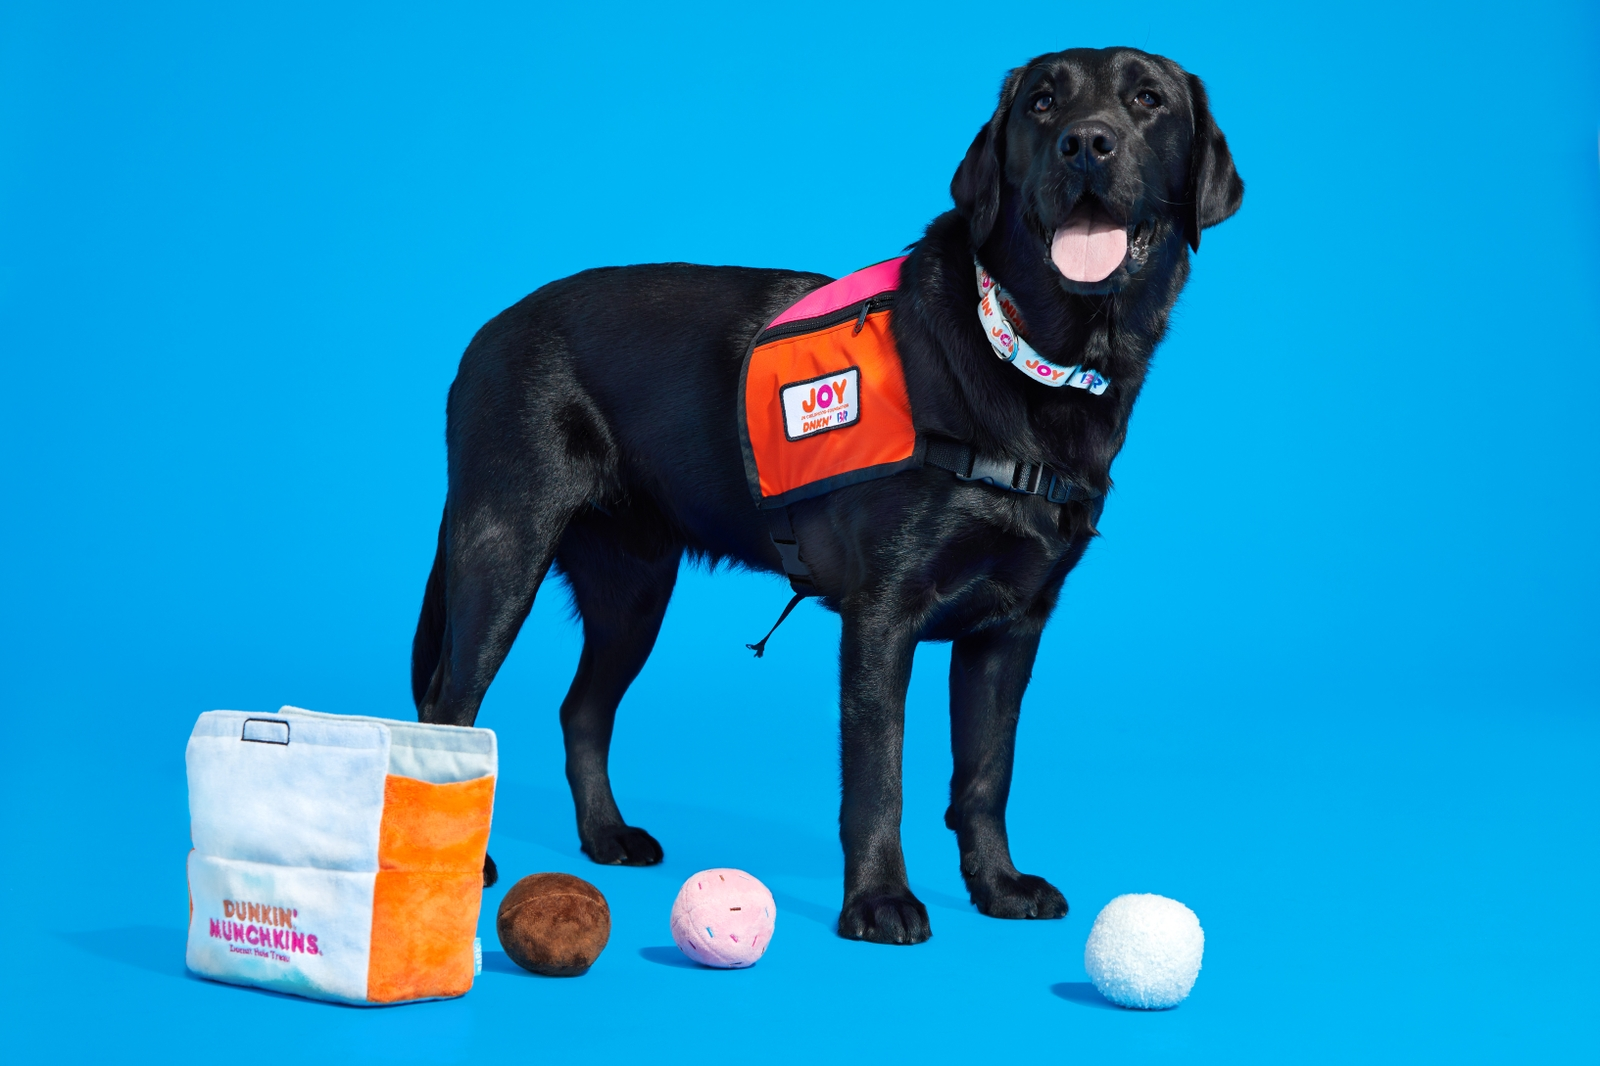 Dogs Can Now Run on Dunkin' Too: Dunkin' and BARK Introduce  New Dog Toys for a Cause